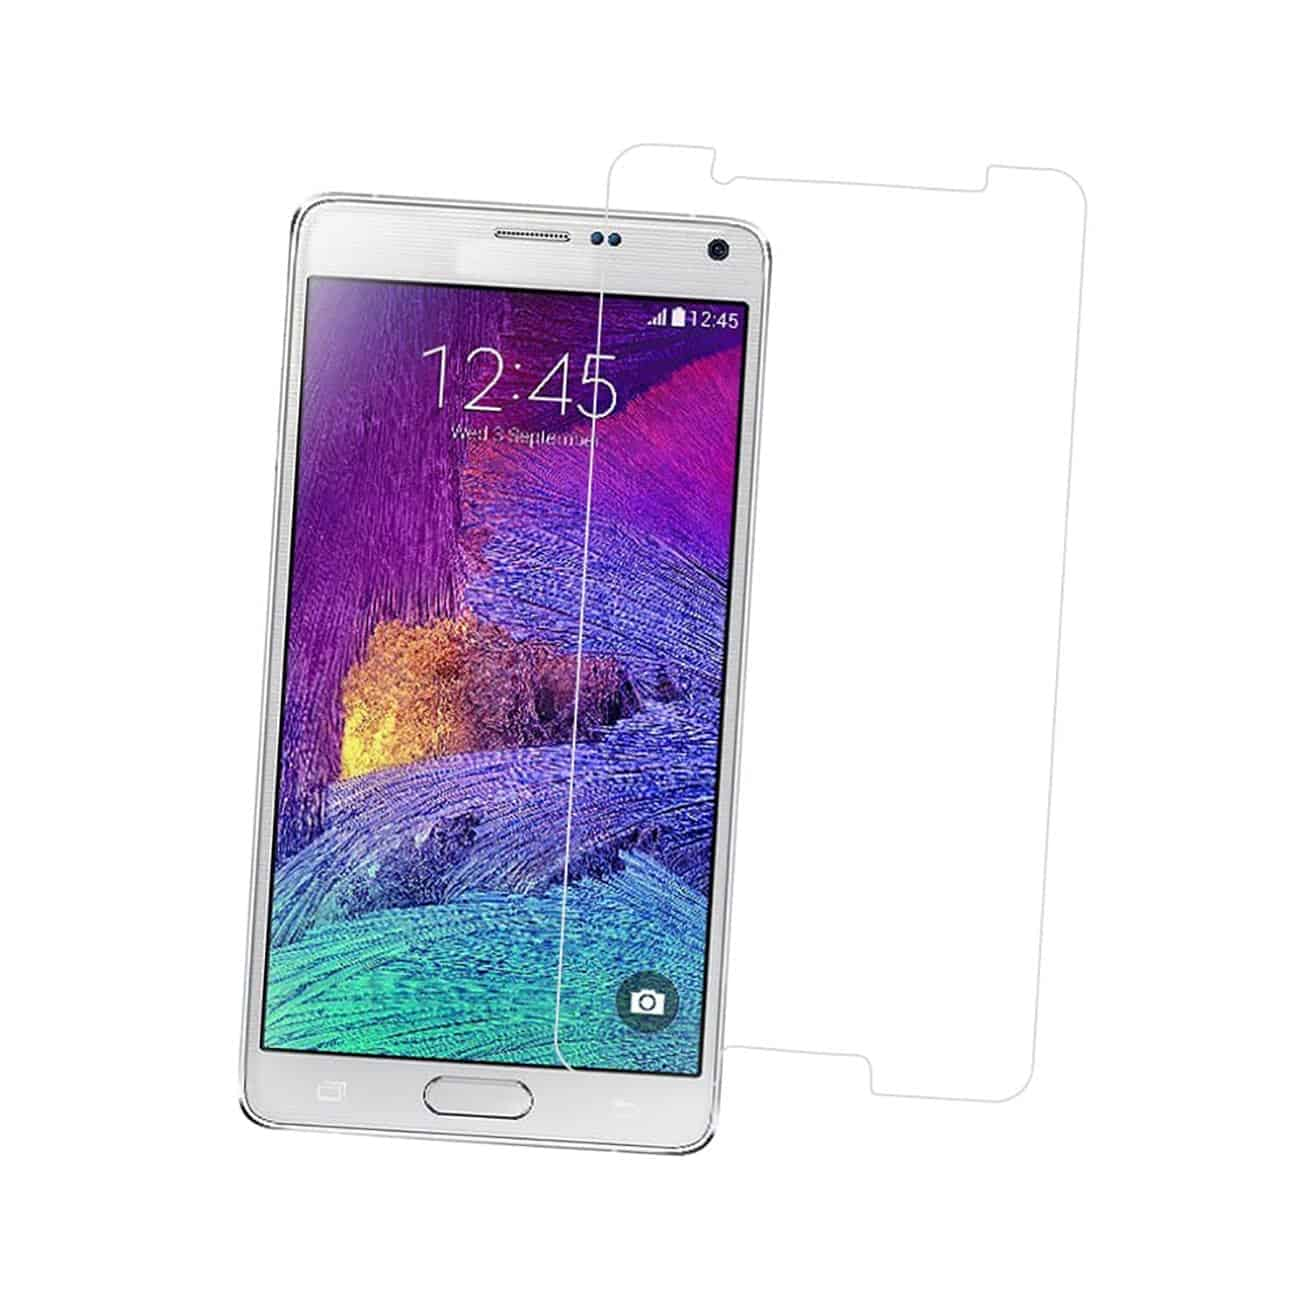 SAMSUNG GALAXY NOTE 5 TEMPERED GLASS SCREEN PROTECTOR IN CLEAR